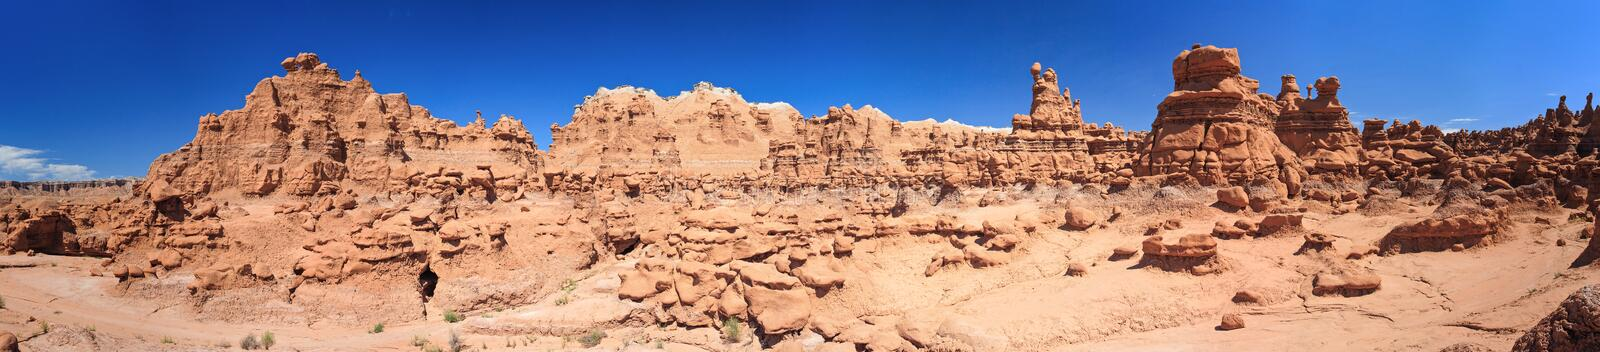 Panorama of Hoodoo Rock pinnacles in Goblin Valley State Park Utah USA stock photography